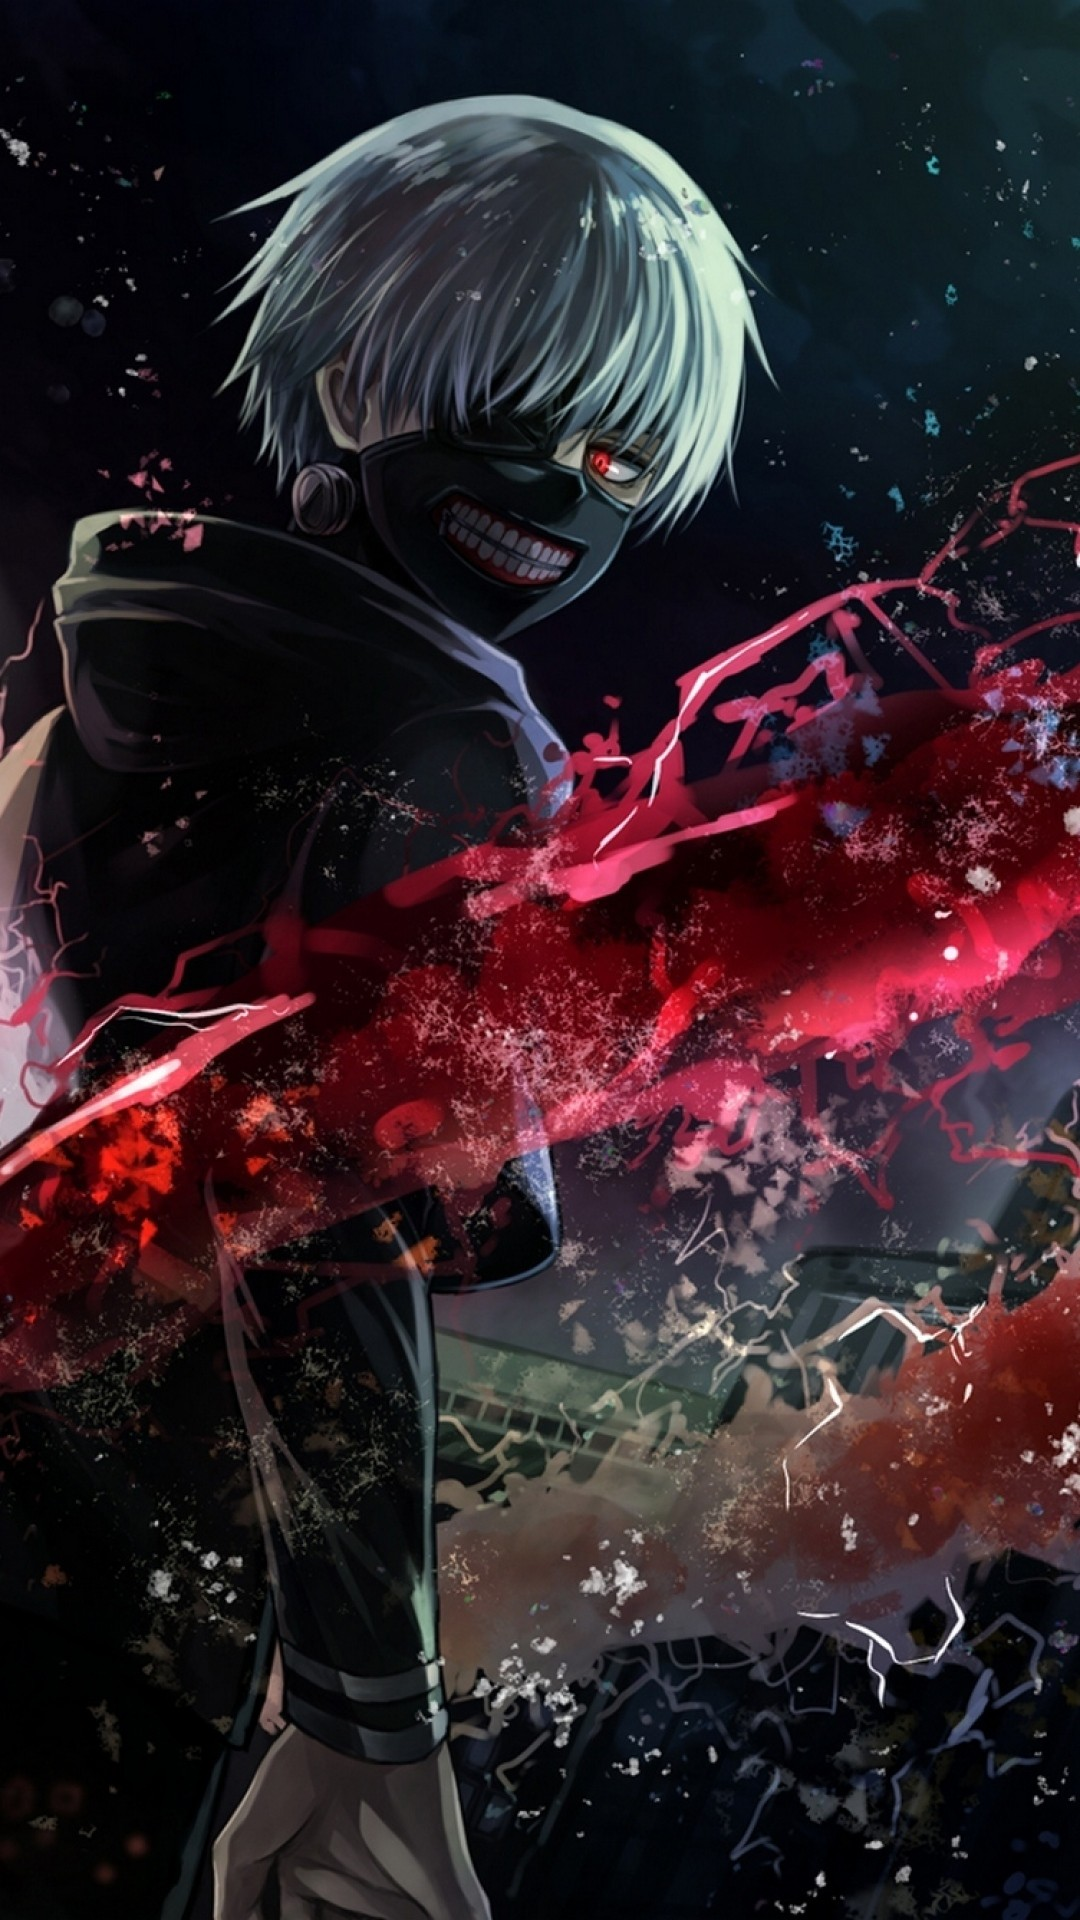 Tokyo Ghoul wallpaper HD ·① Download free cool backgrounds ...